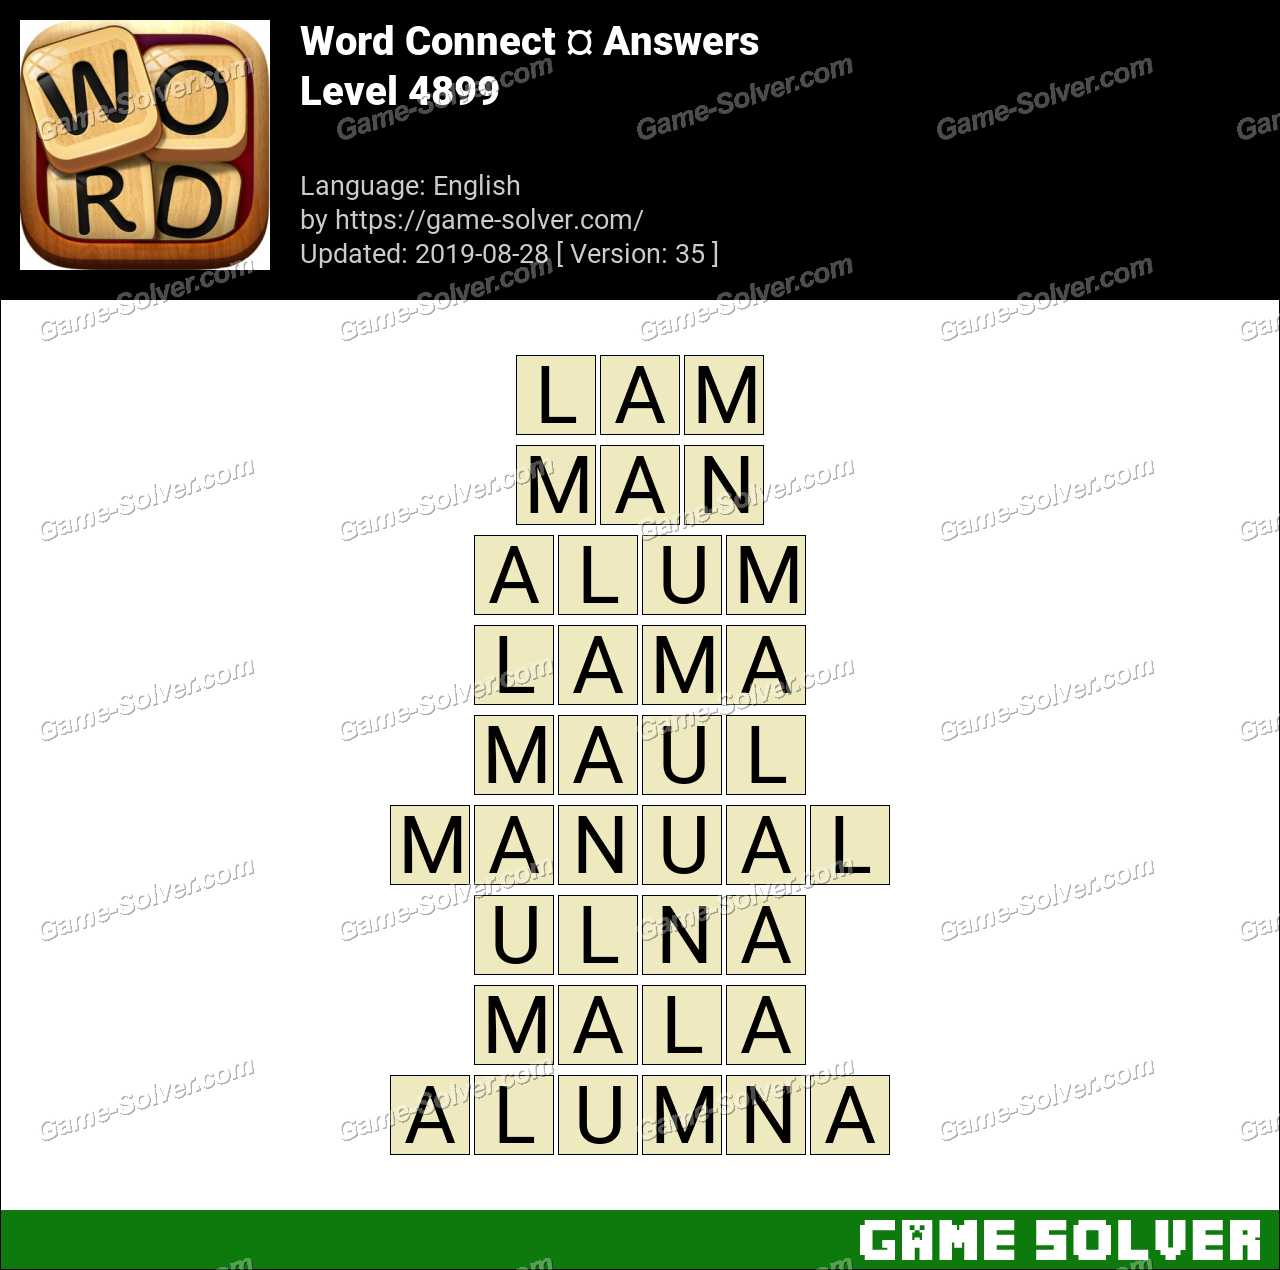 Word Connect Level 4899 Answers